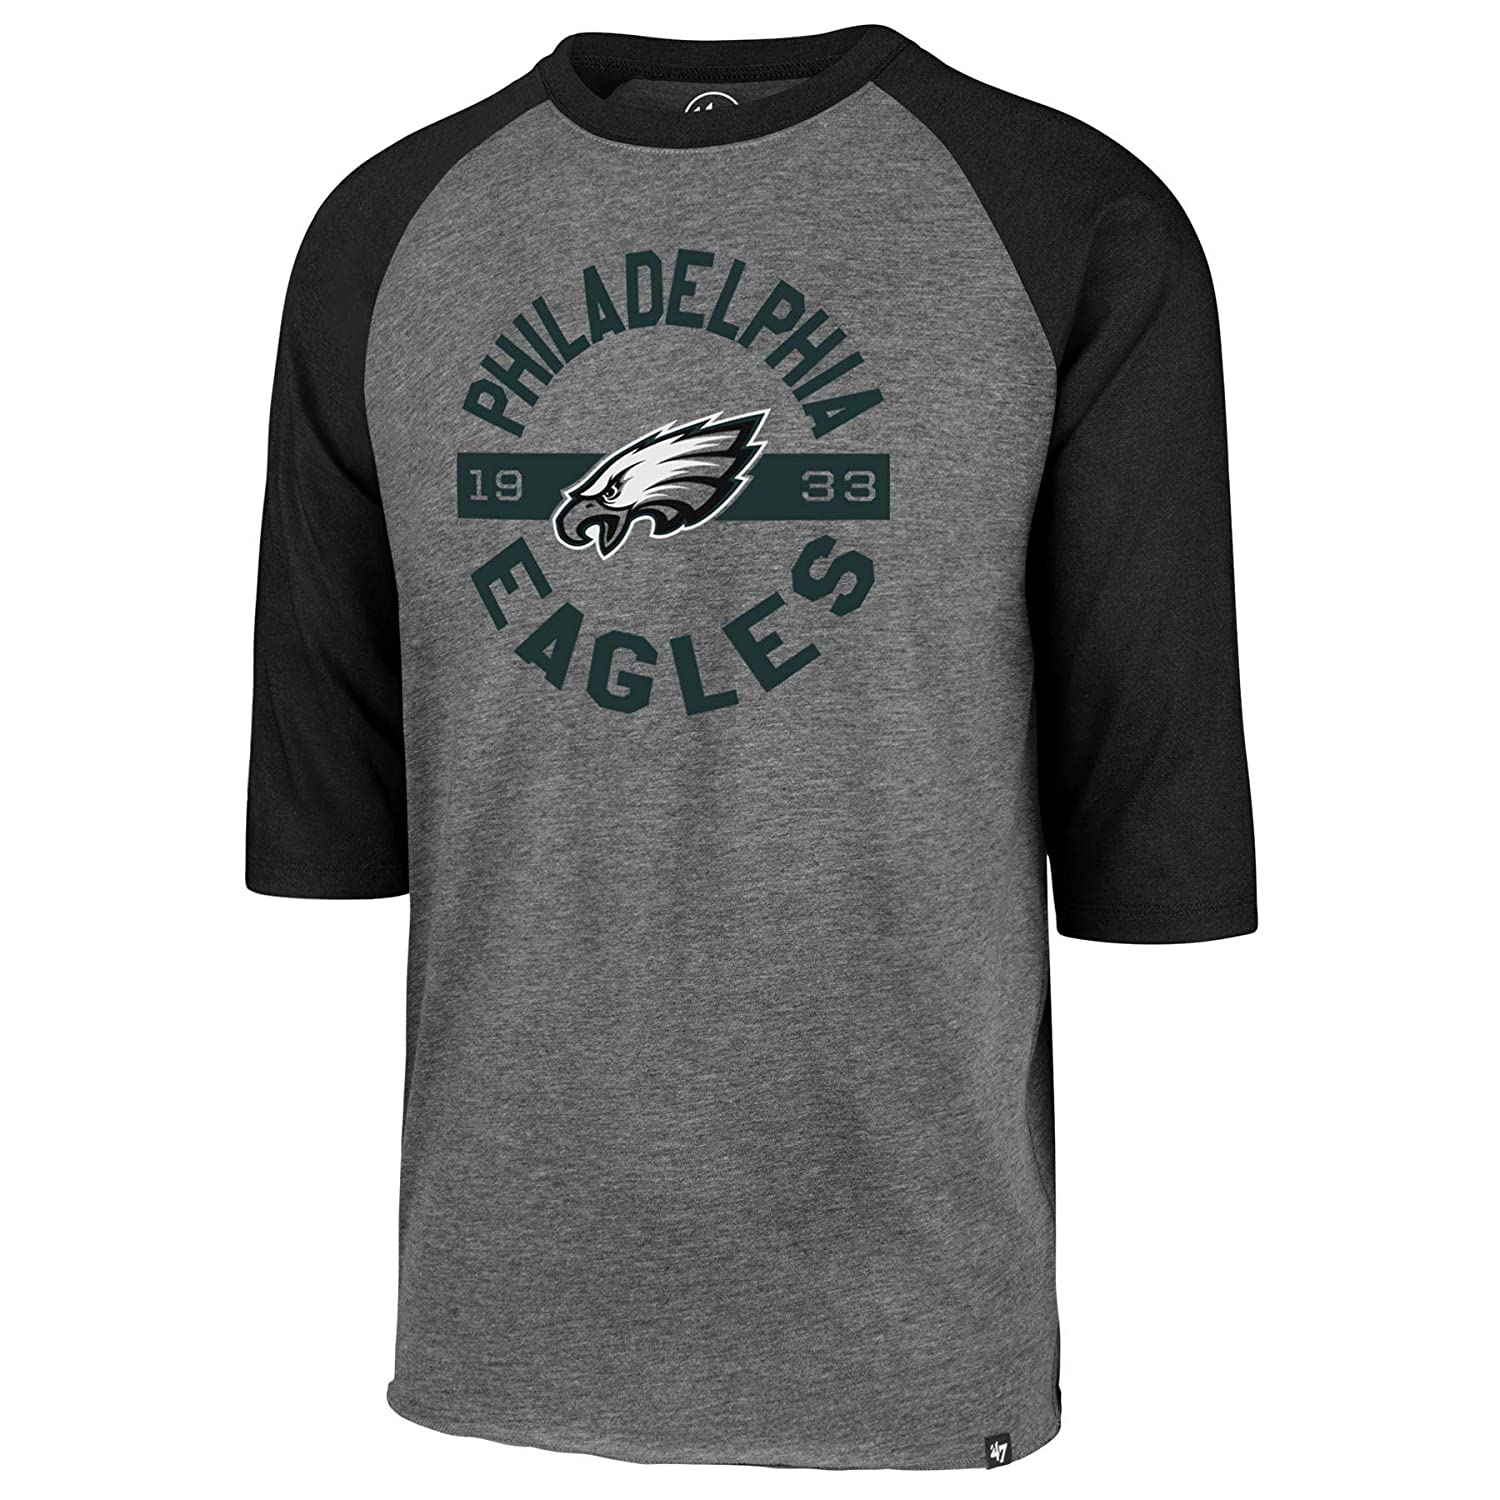 Amazon.com    47 Philadelphia Eagles NFL Roundabout Club 3 4 Raglan T-Shirt    Sports   Outdoors fbdf1827e